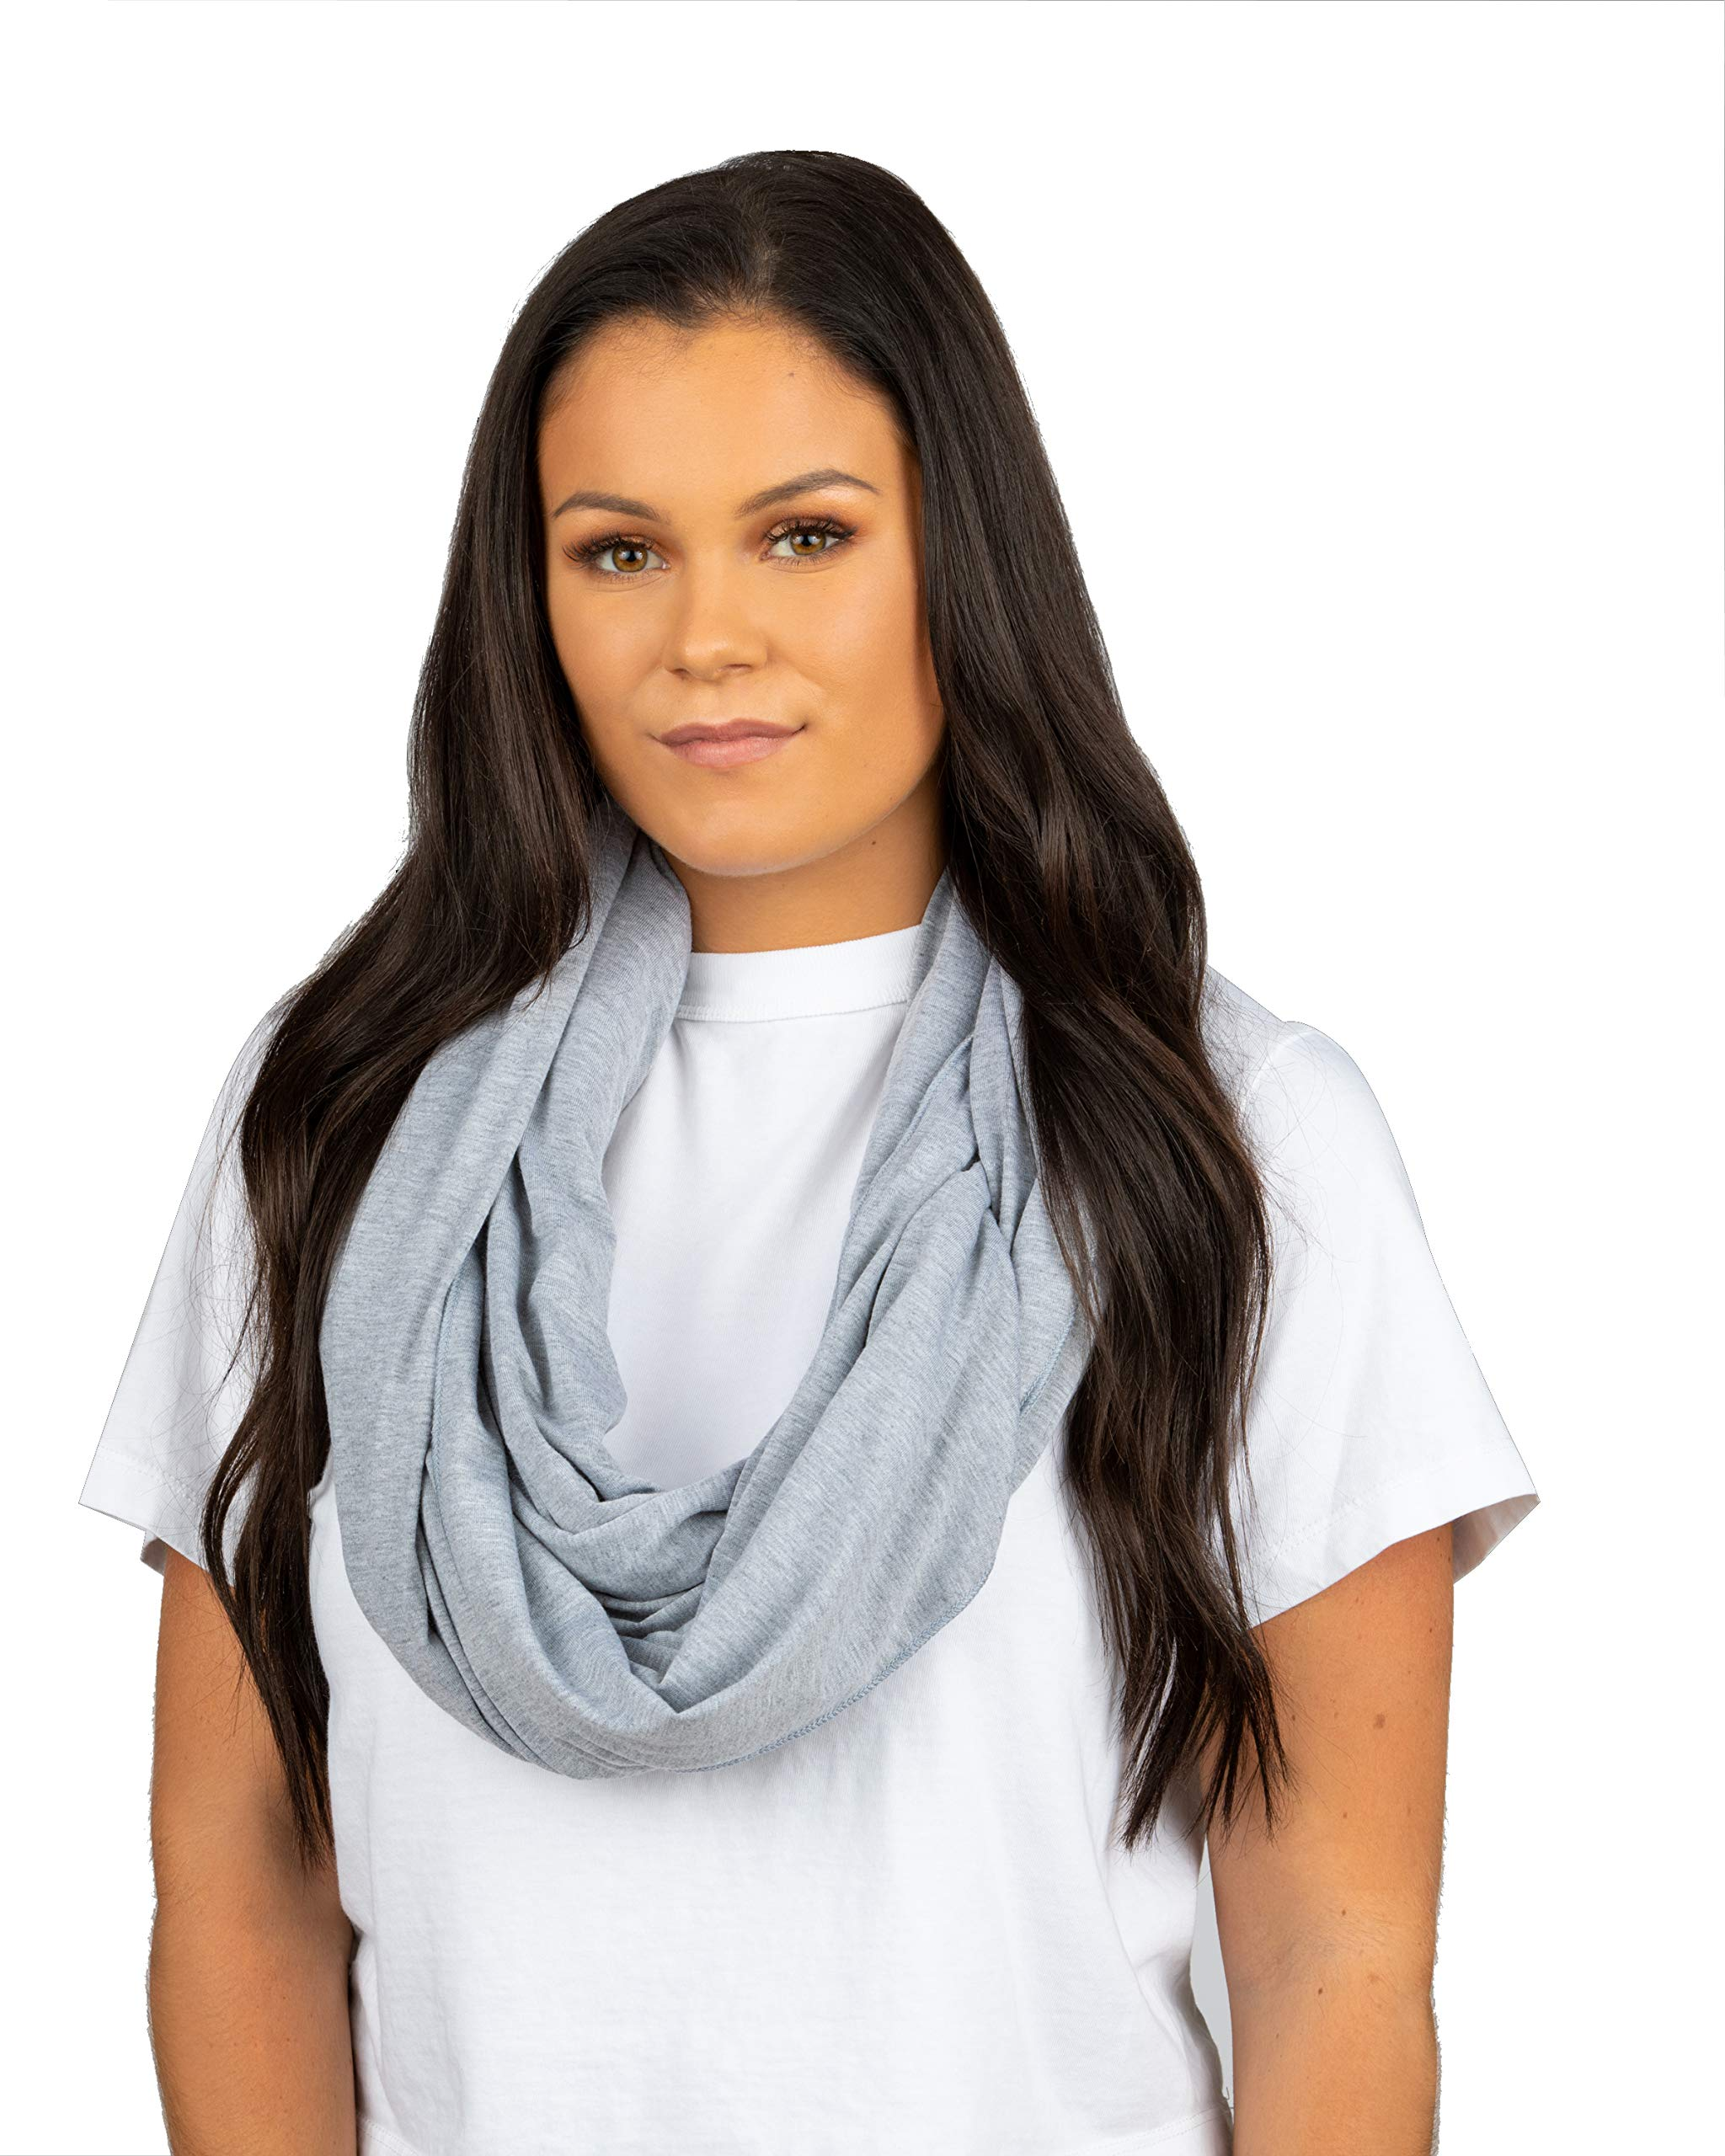 Sleeper Scarf 2-in-1 Travel Scarf and Inflatable Neck Pillow (Heather Grey, Traditional Inflate)